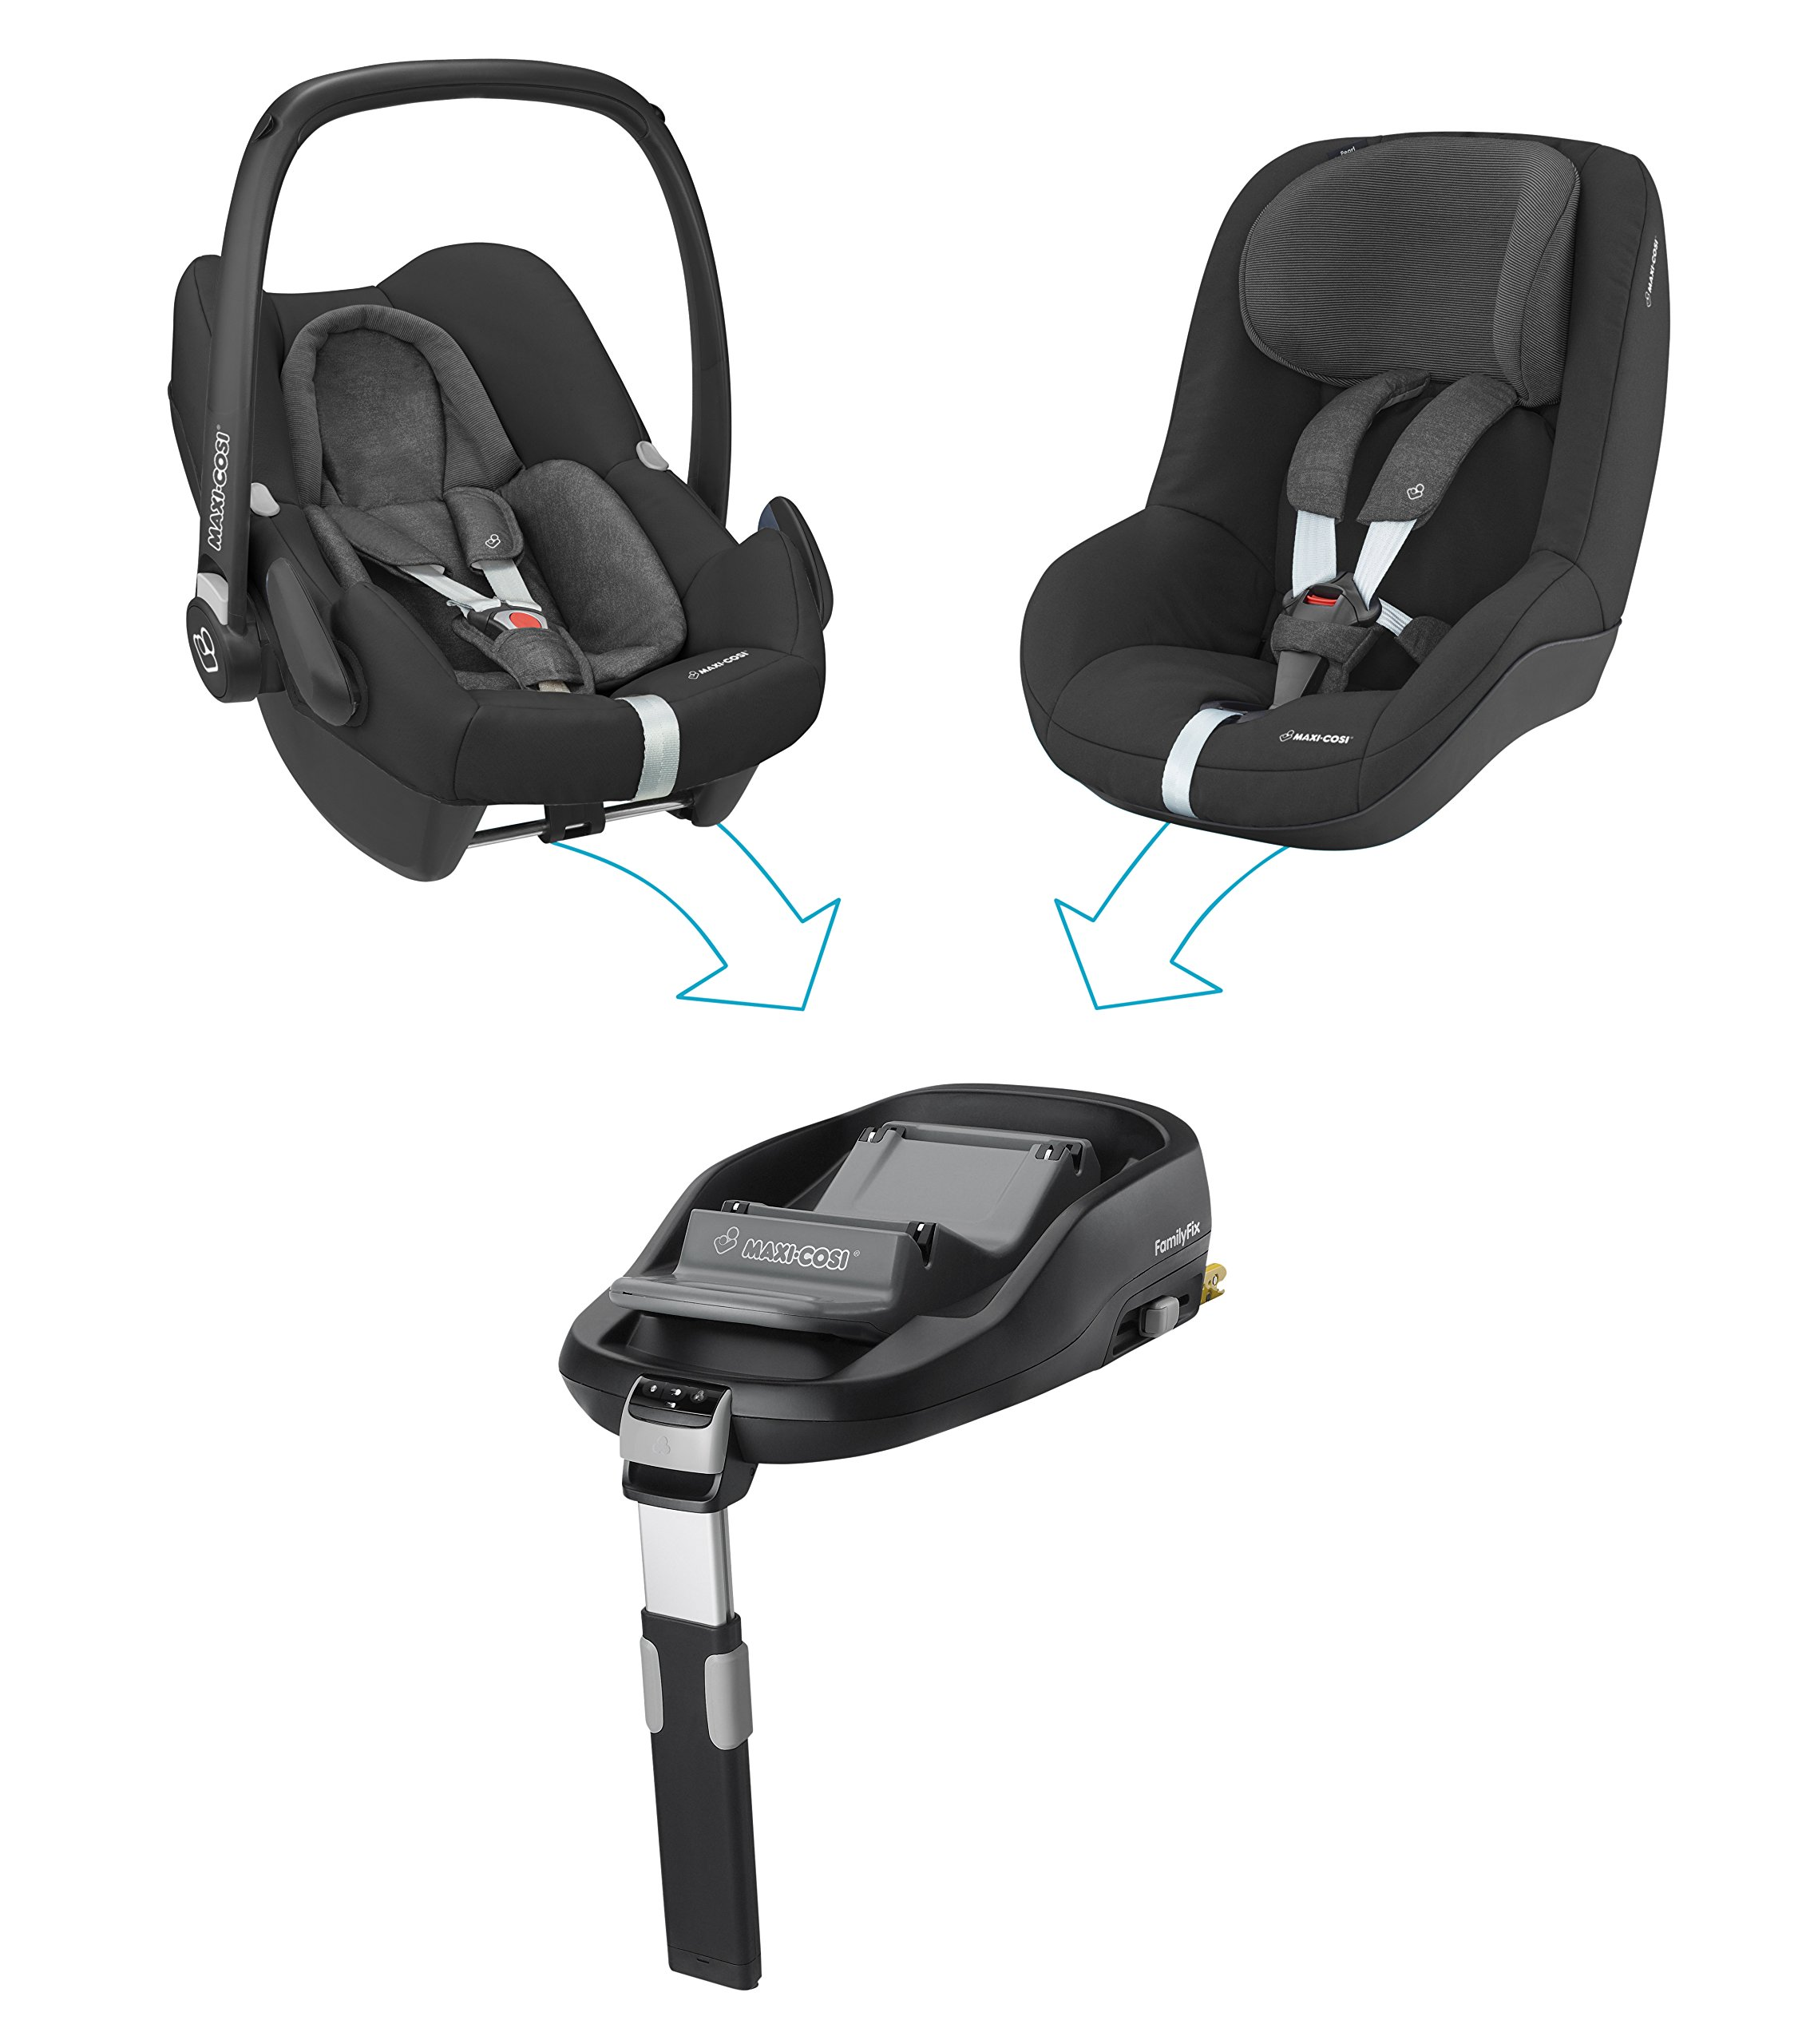 Maxi-Cosi Pearl Toddler Car Seat Group 1, ISOFIX Car Seat, Compact, , 9 Months - 4 Years, 9-18 kg, Nomad Black Maxi-Cosi Interactive visual and audible feedback when the pearl is correctly installed with the maxi-cosi family fix base in the car Spring-loaded, stay open harness to make buckling up your toddler easier as the harness stays out of the way Simultaneous harness & headrest adjustment can be operated with one-hand 3